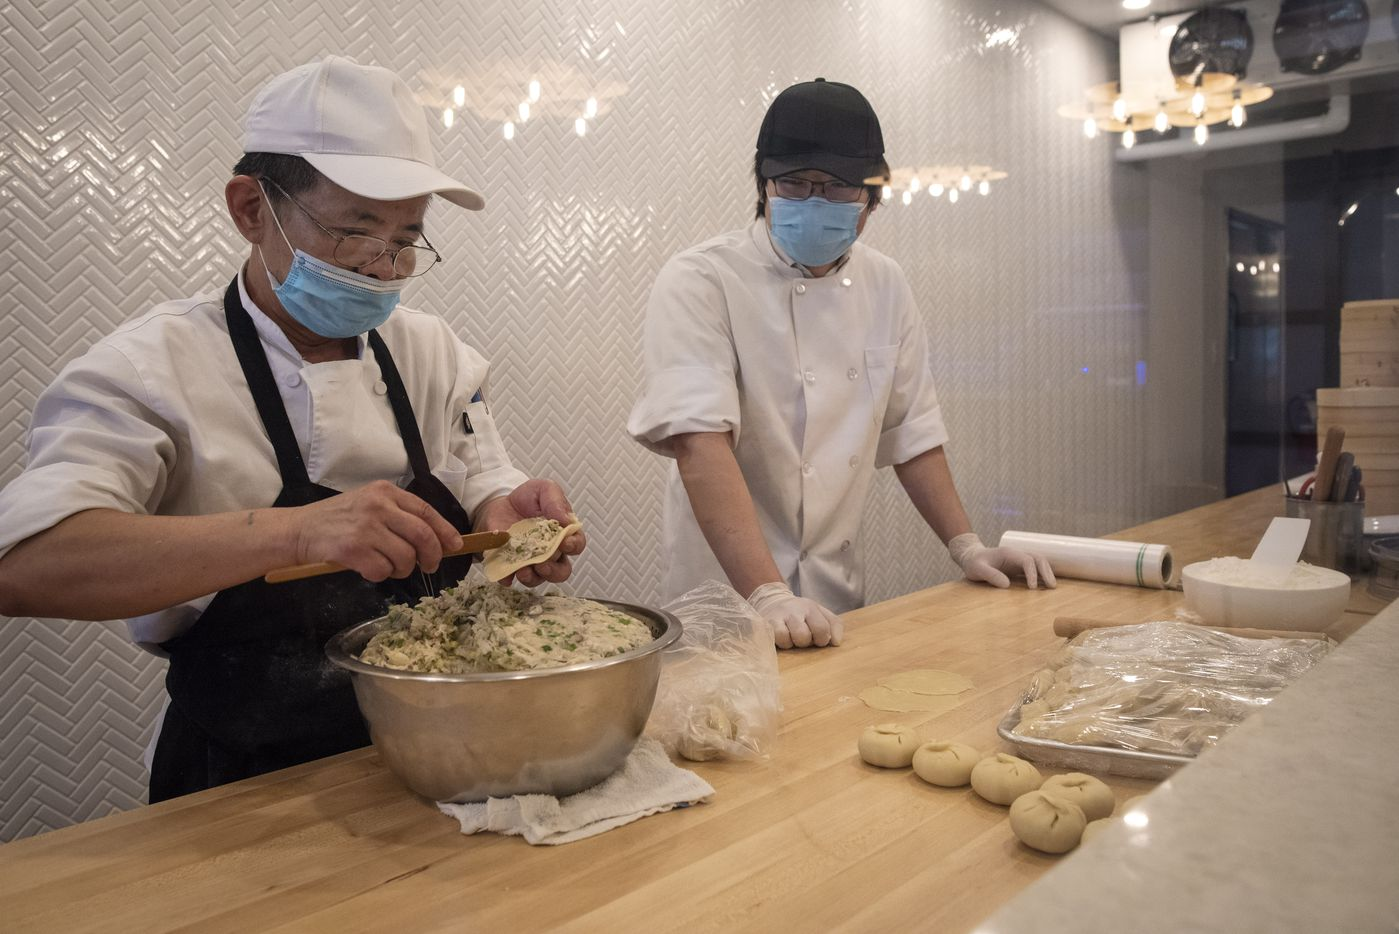 Dumpling chef Harrison Huang, left, and owner Ian Peng behind the dumpling window at Kitchen Master restaurant in Frisco, Sunday, May 31, 2020.